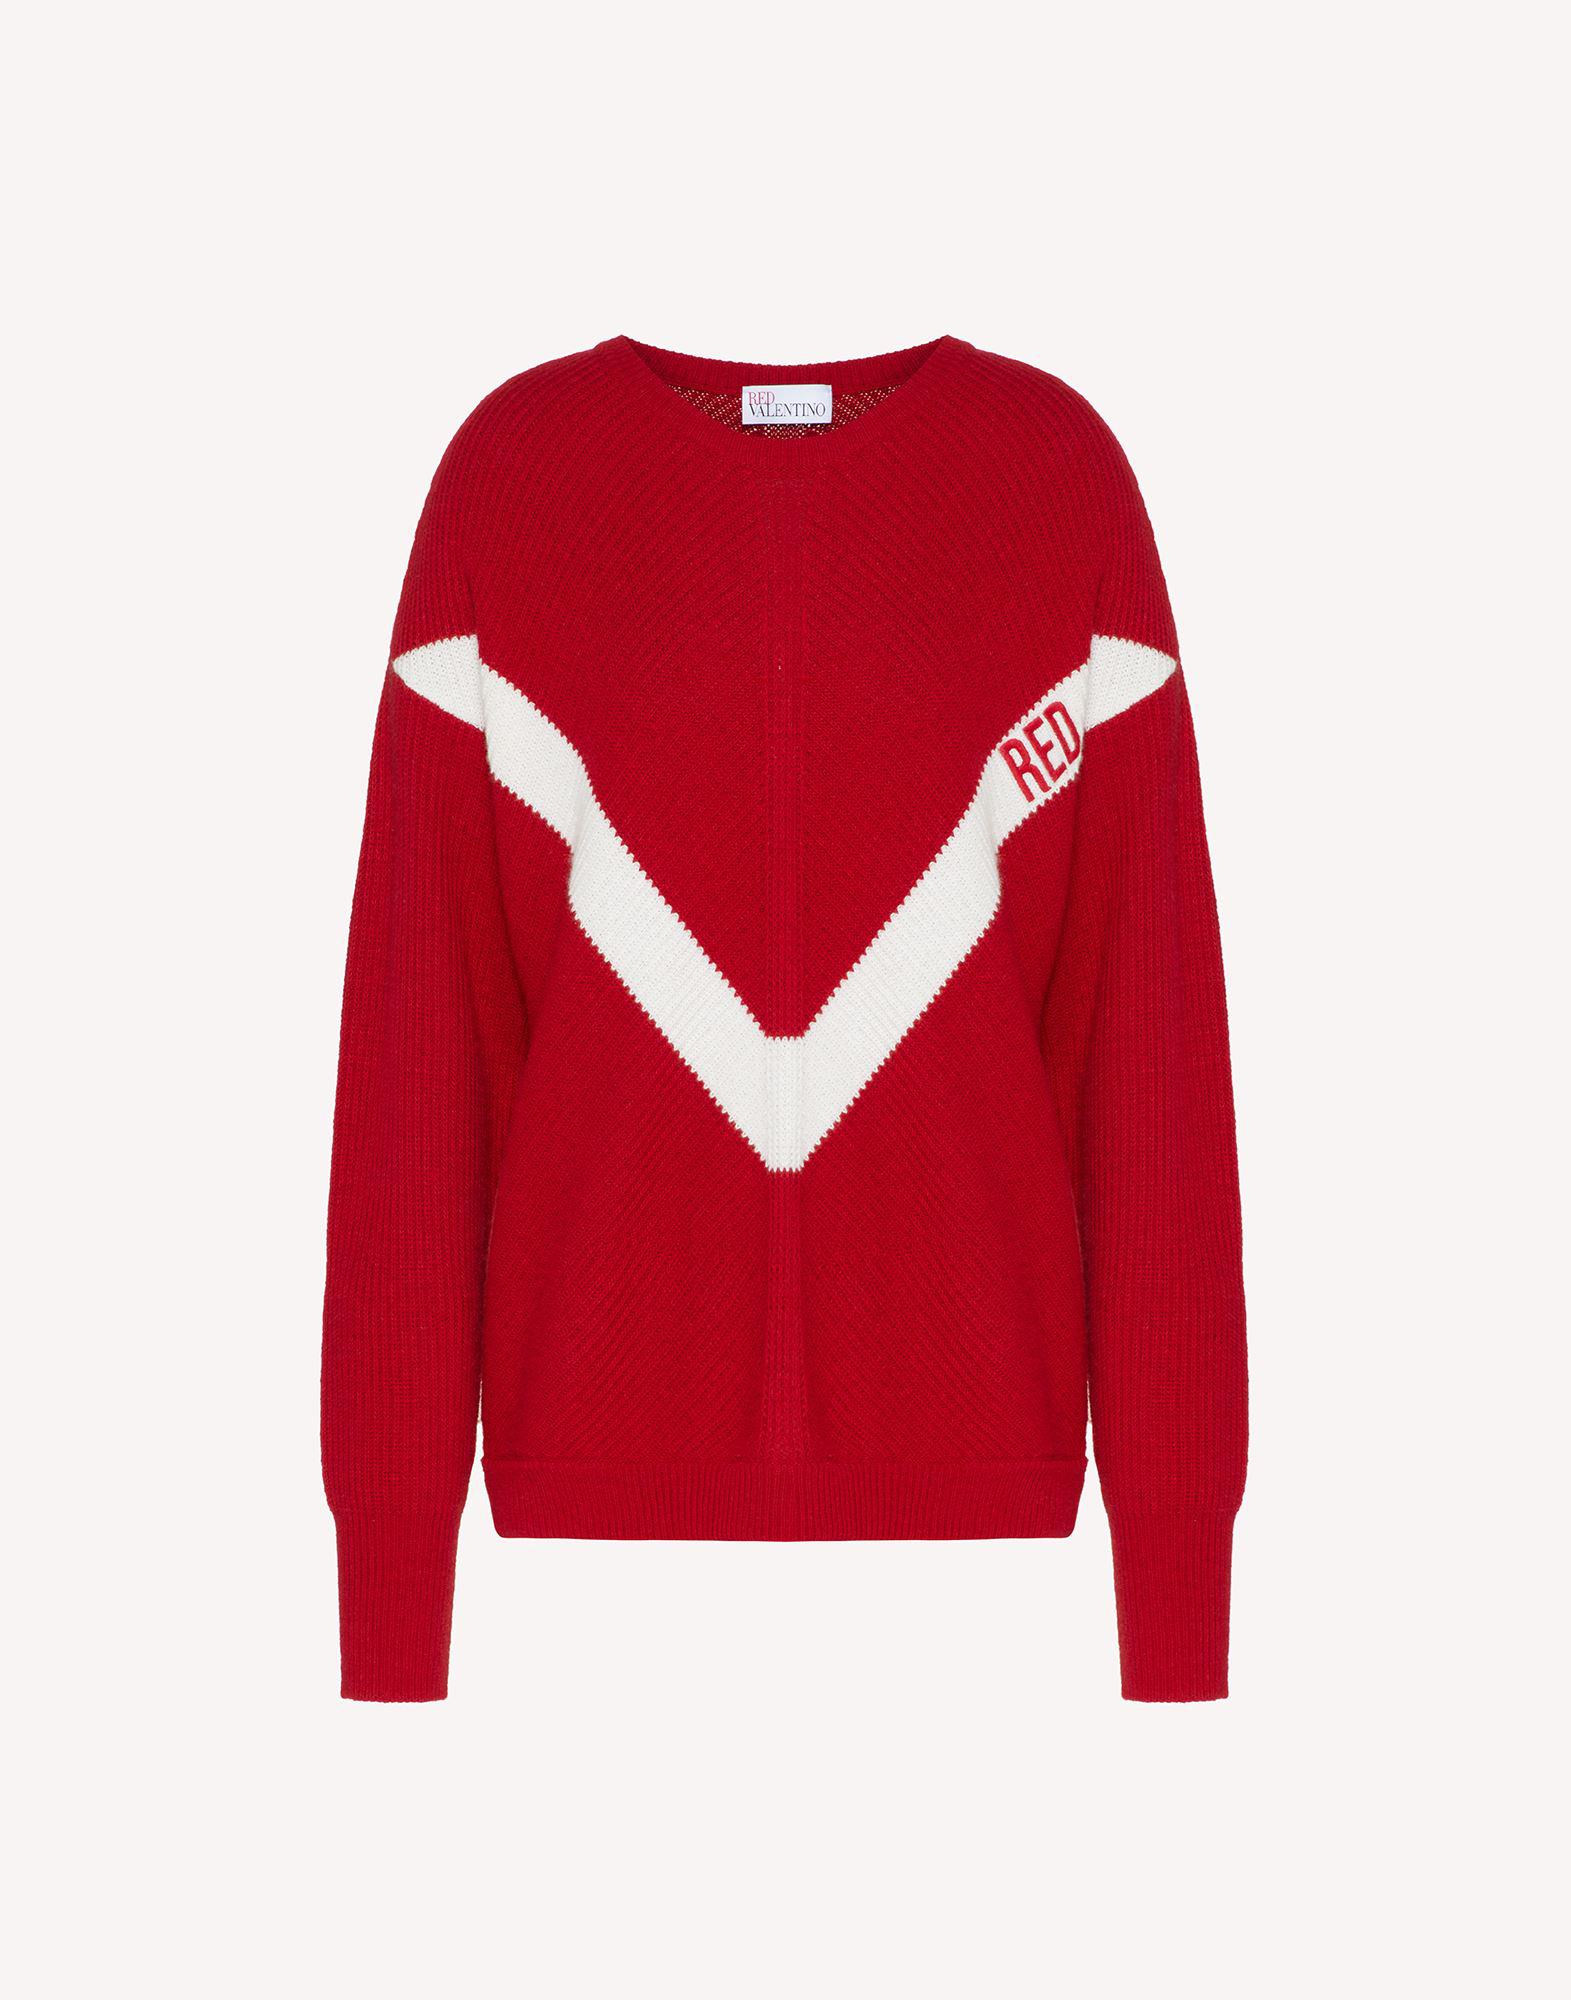 RED EMBROIDERED WOOL-BLEND SWEATER 4